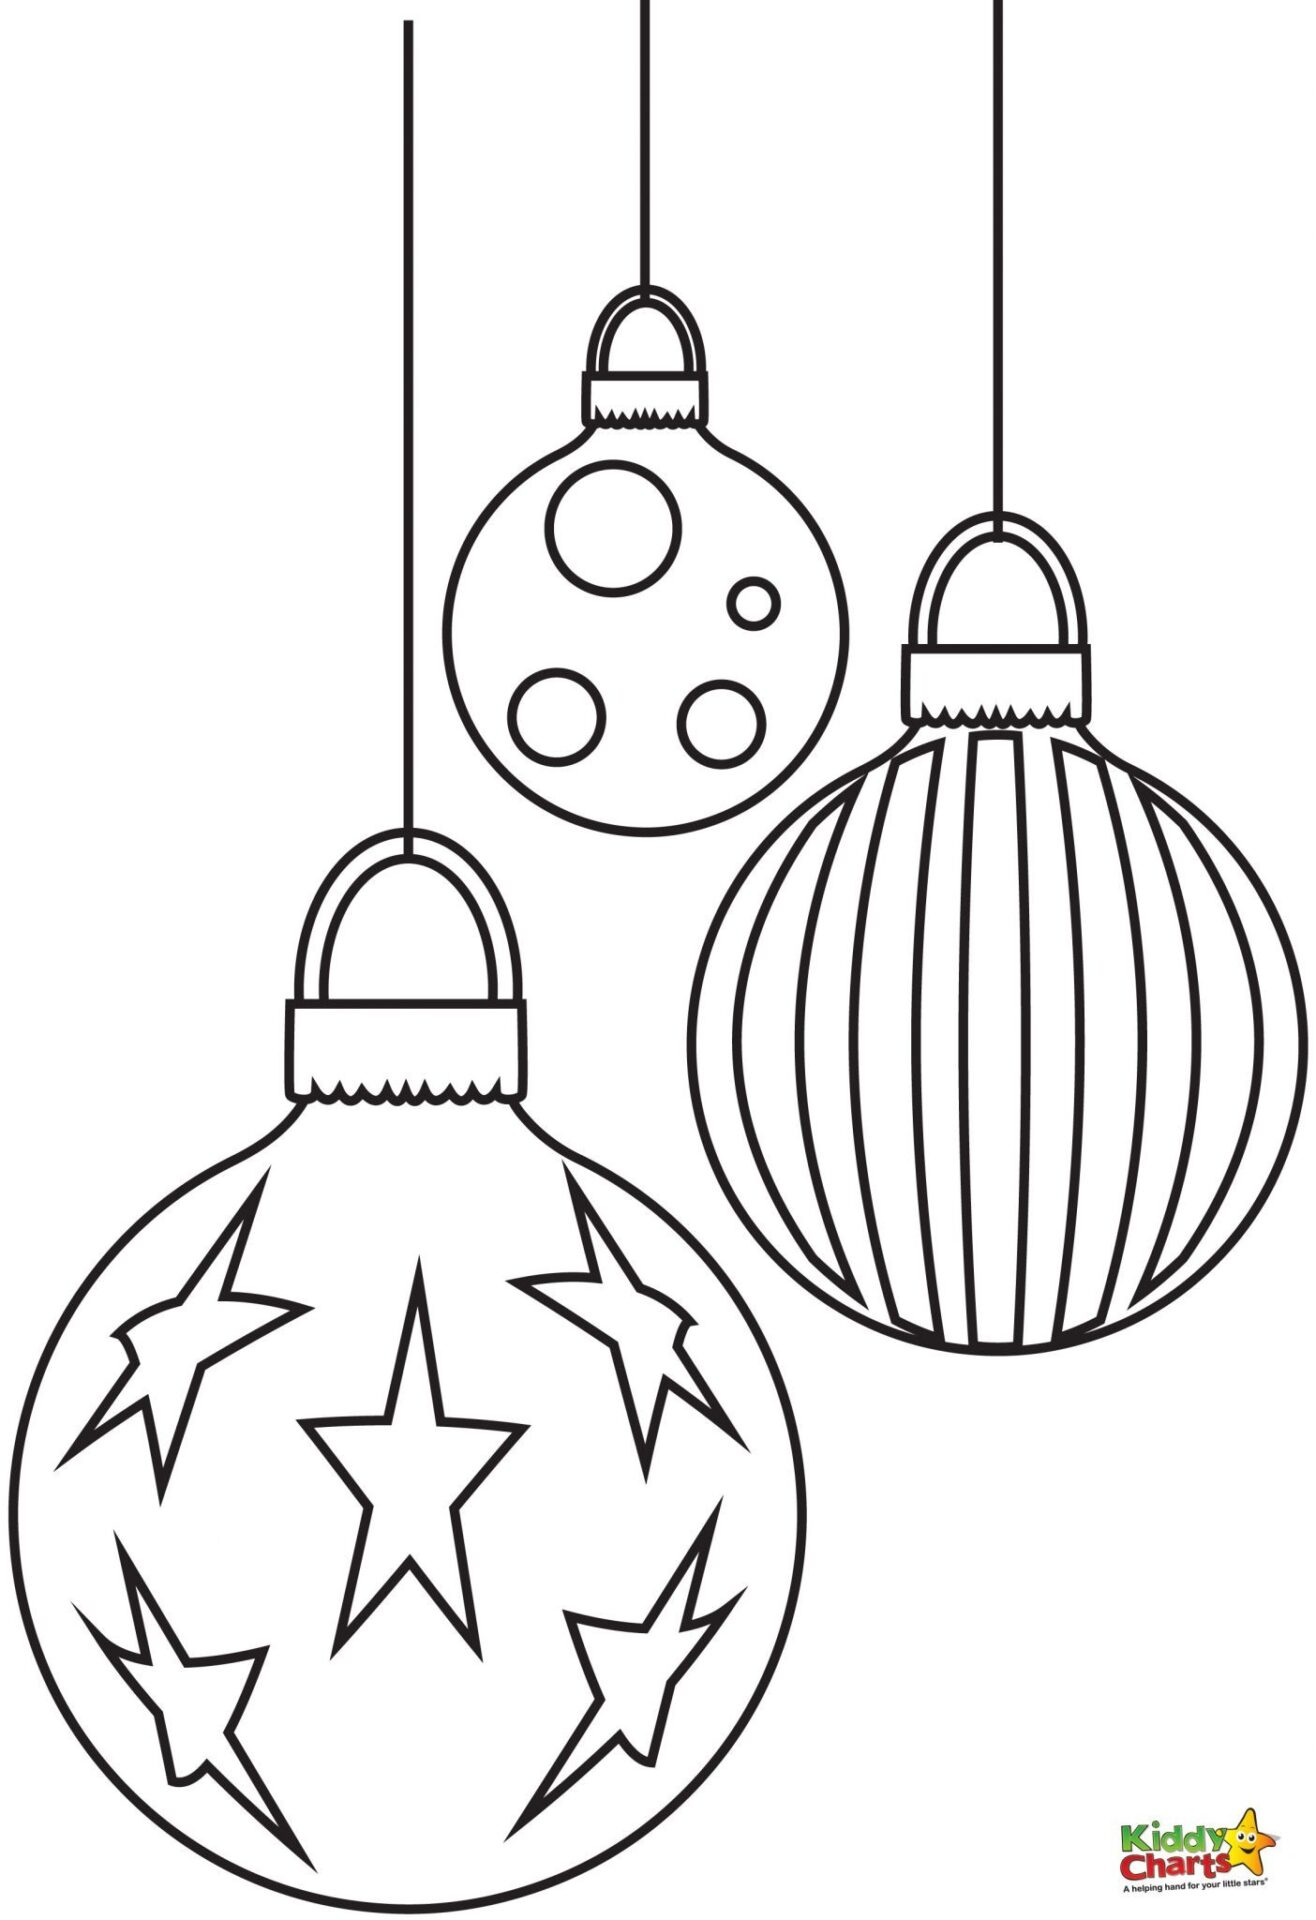 Baubles - Free Christmas Coloring Pages from Kiddycharts